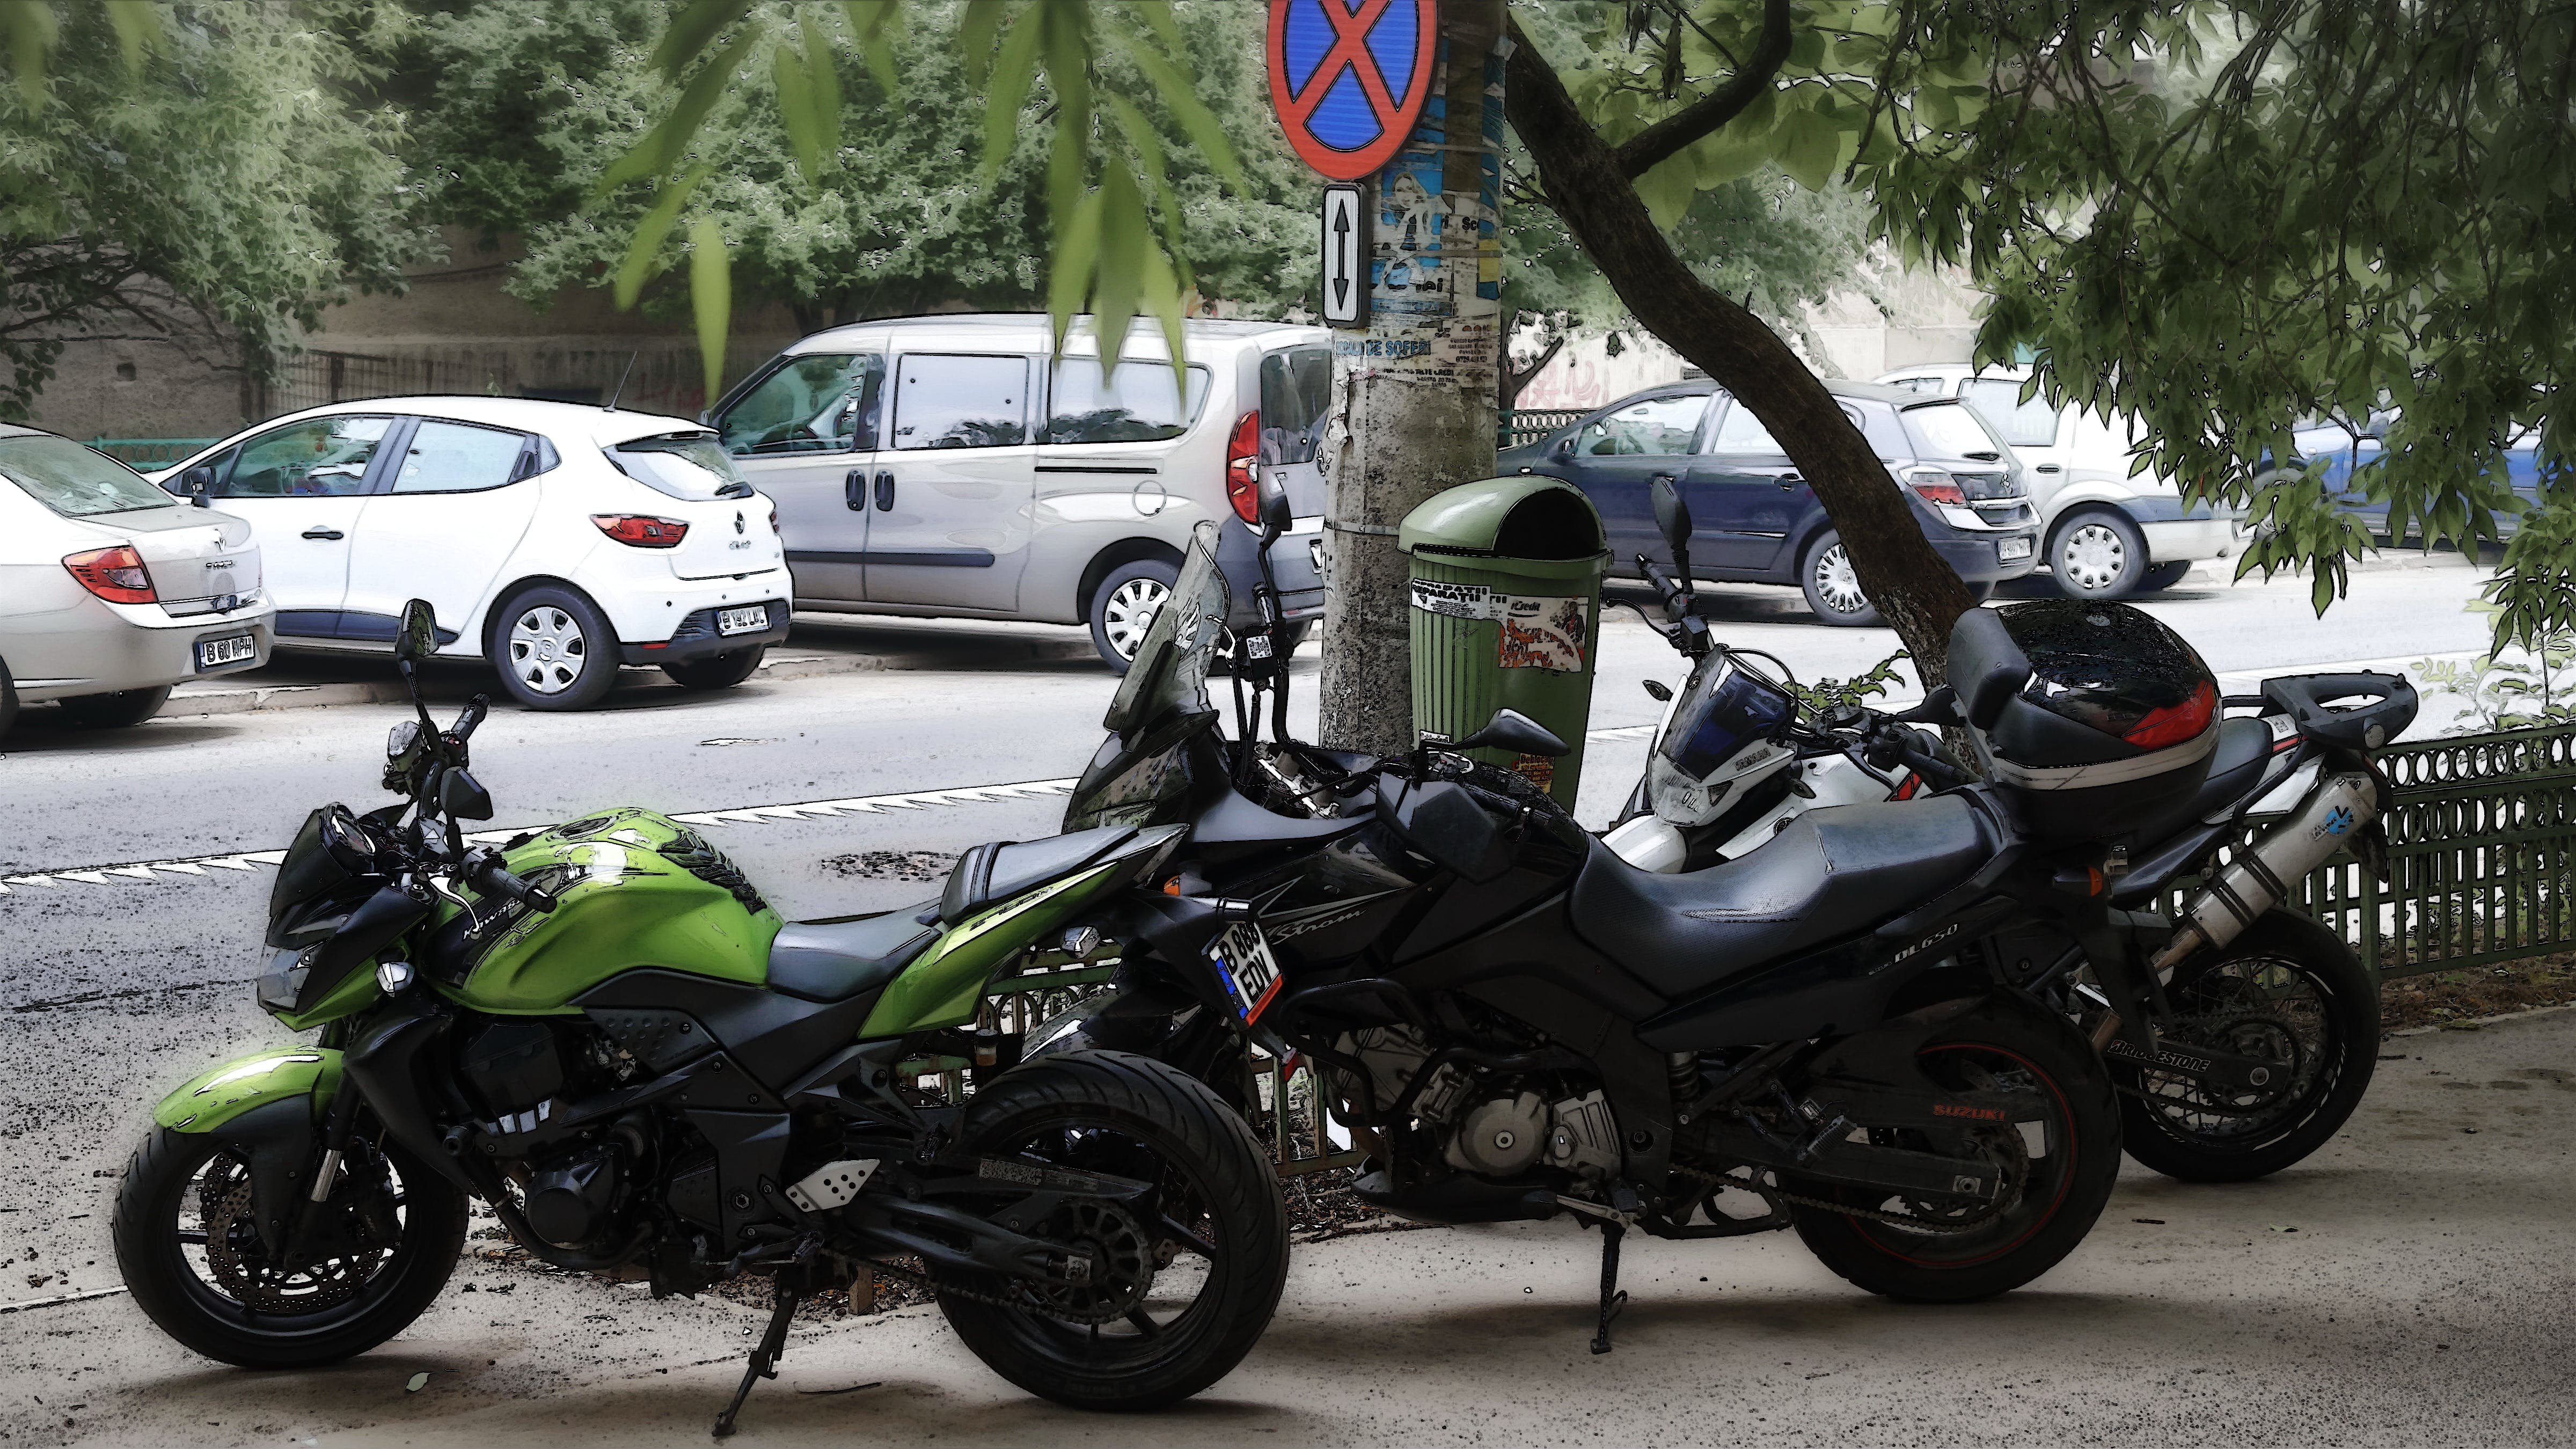 Free stock photo of metallic fence, motor bikes, parked, parked cars